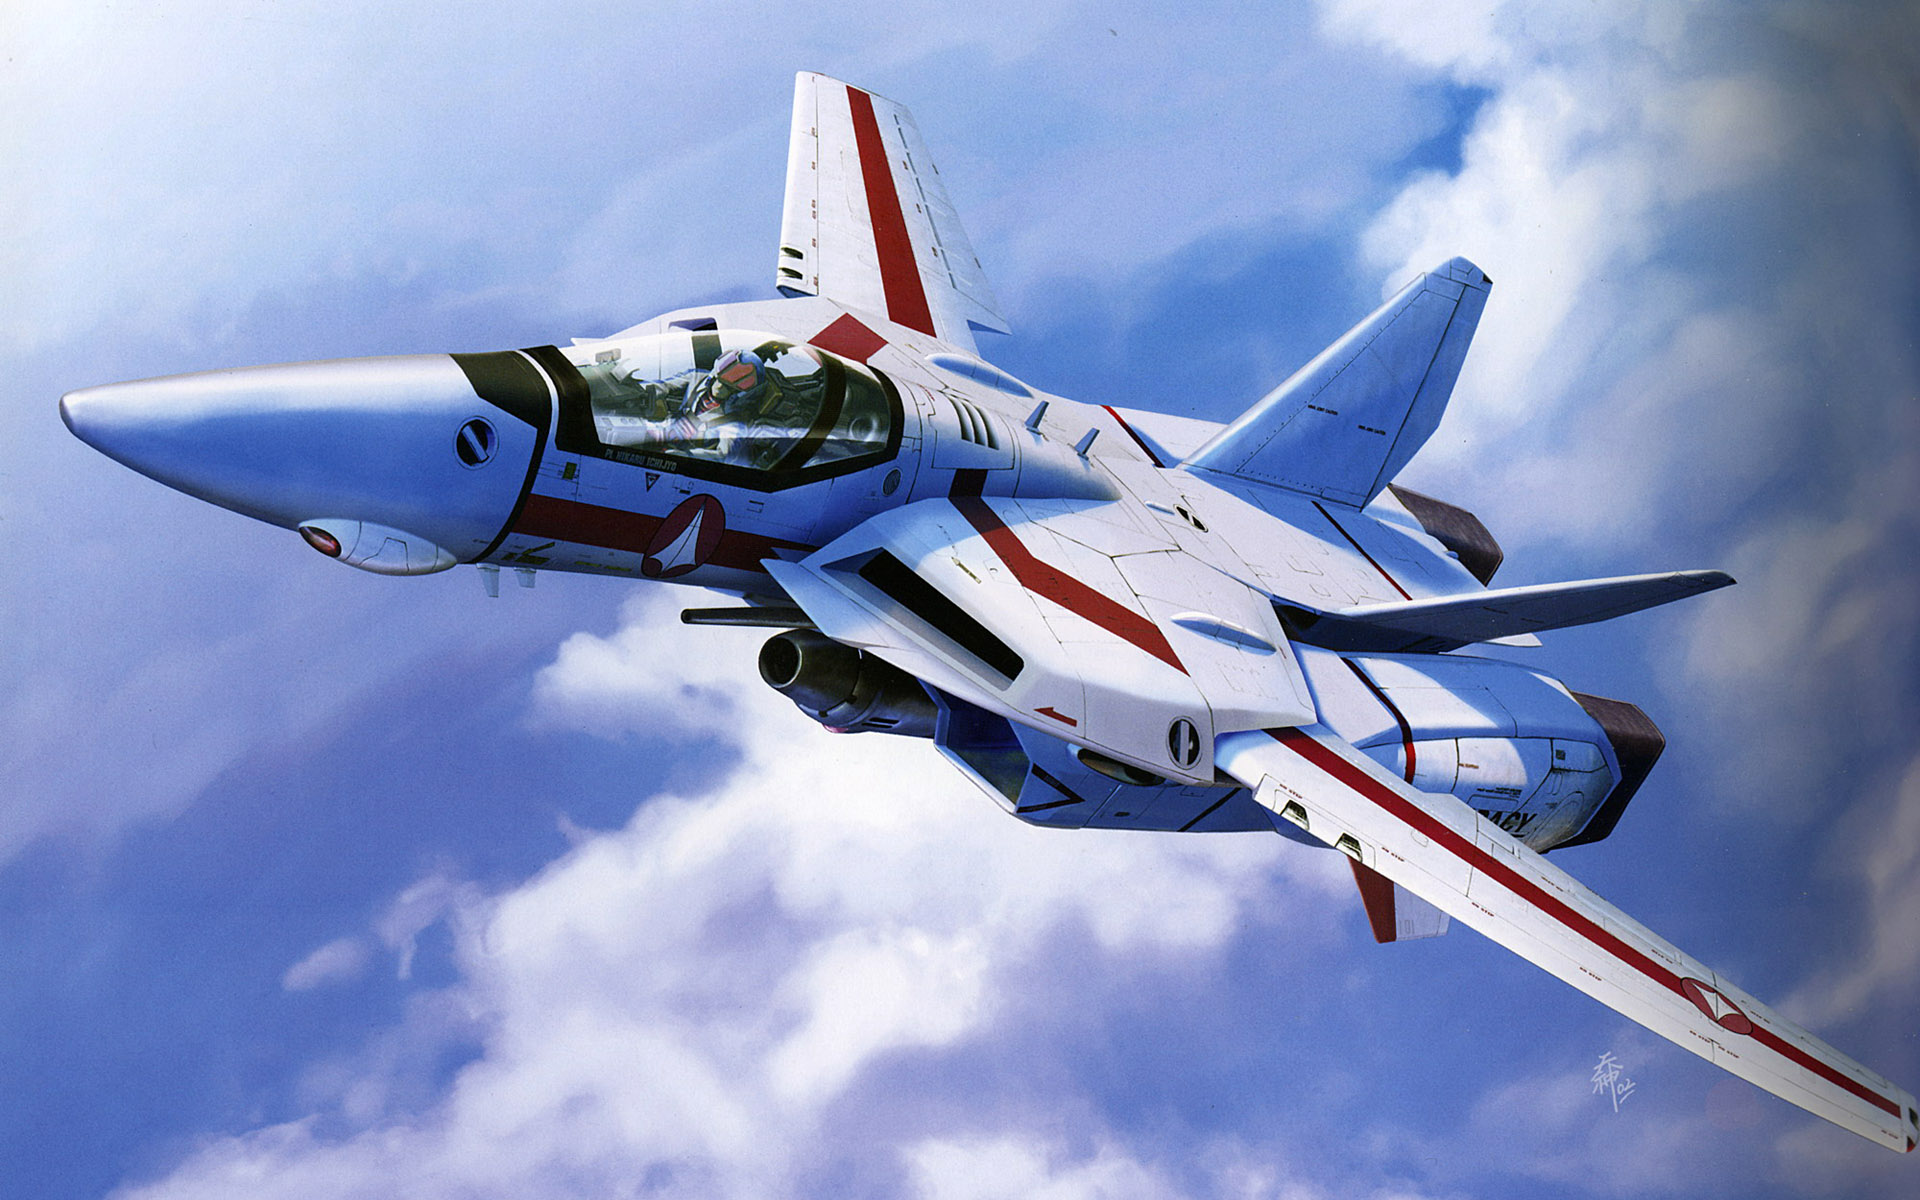 vf - 1 valkyrie wallpaper cg hd (macross/robotech)